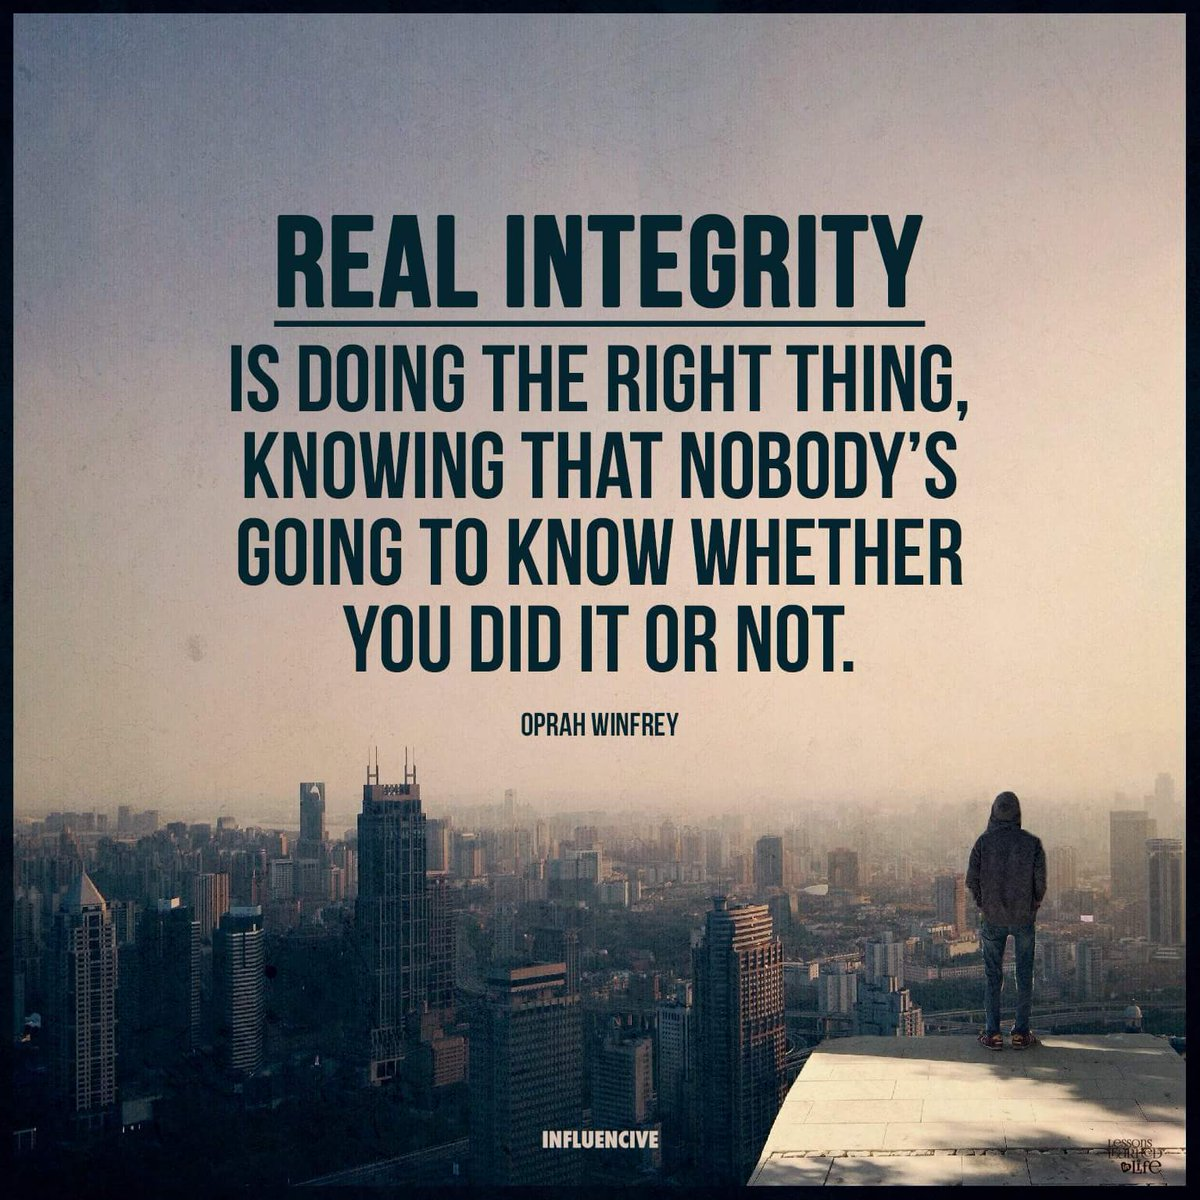 Benny Christian On Twitter Real Integrity Is Doing The Right Thing